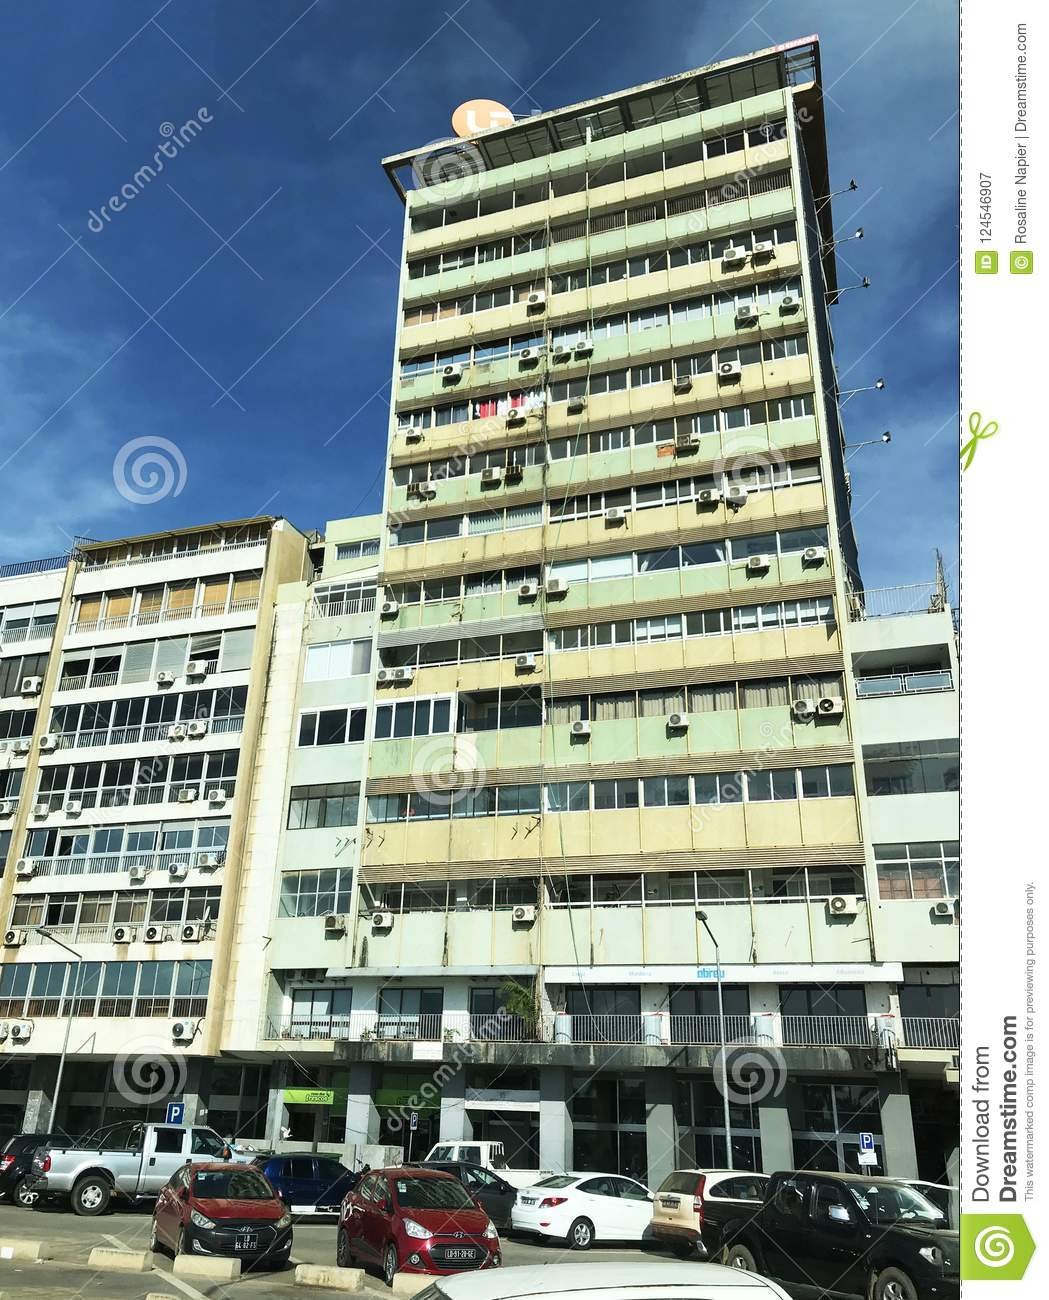 Downtown Luanda high rise building